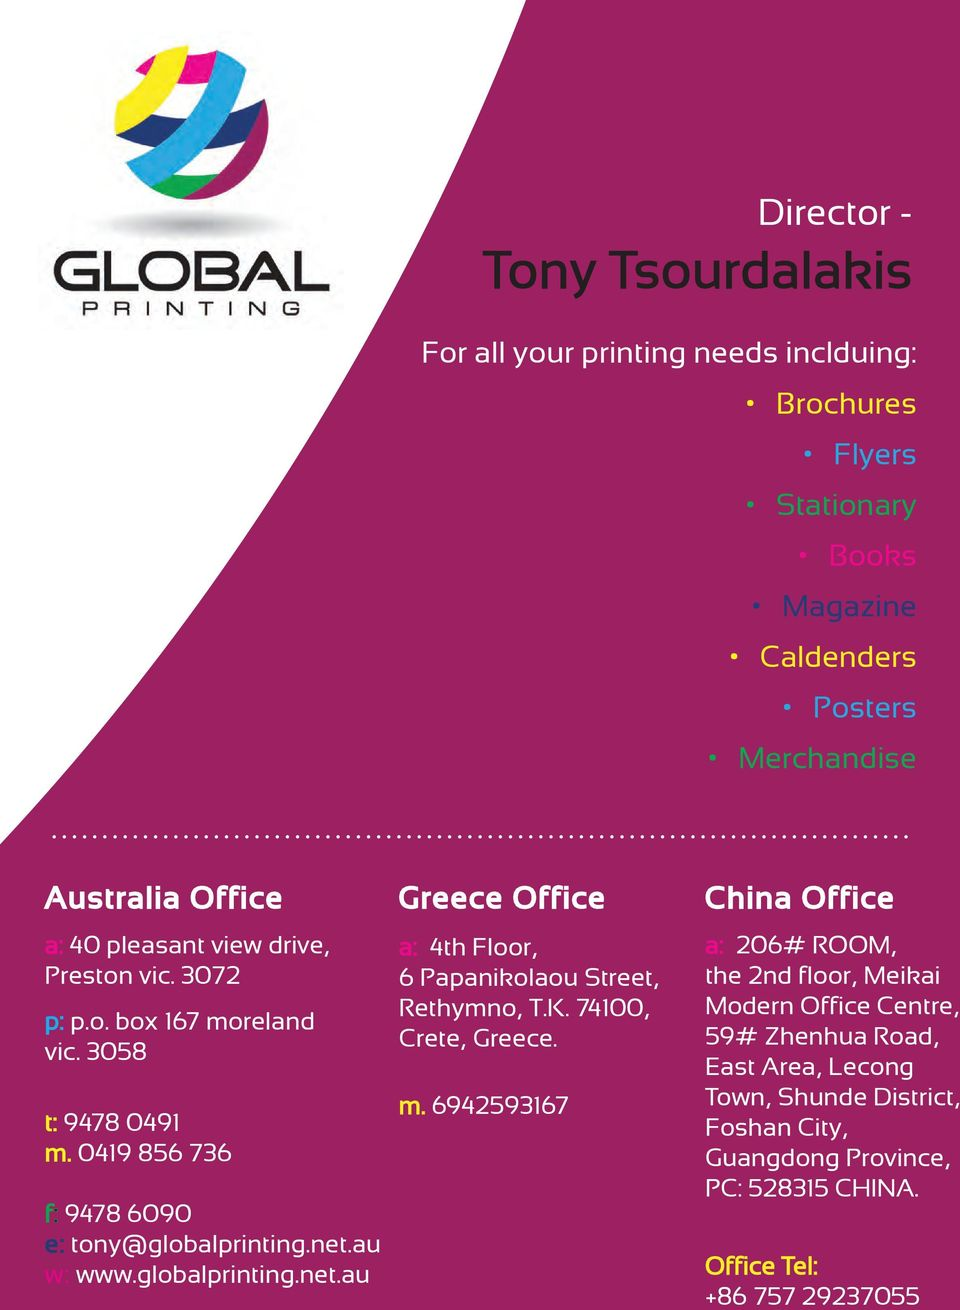 globalprinting.net.au Greece Office a: 4th Floor, 6 Papanikolaou Street, Rethymno, T.K. 74100, Crete, Greece. m.